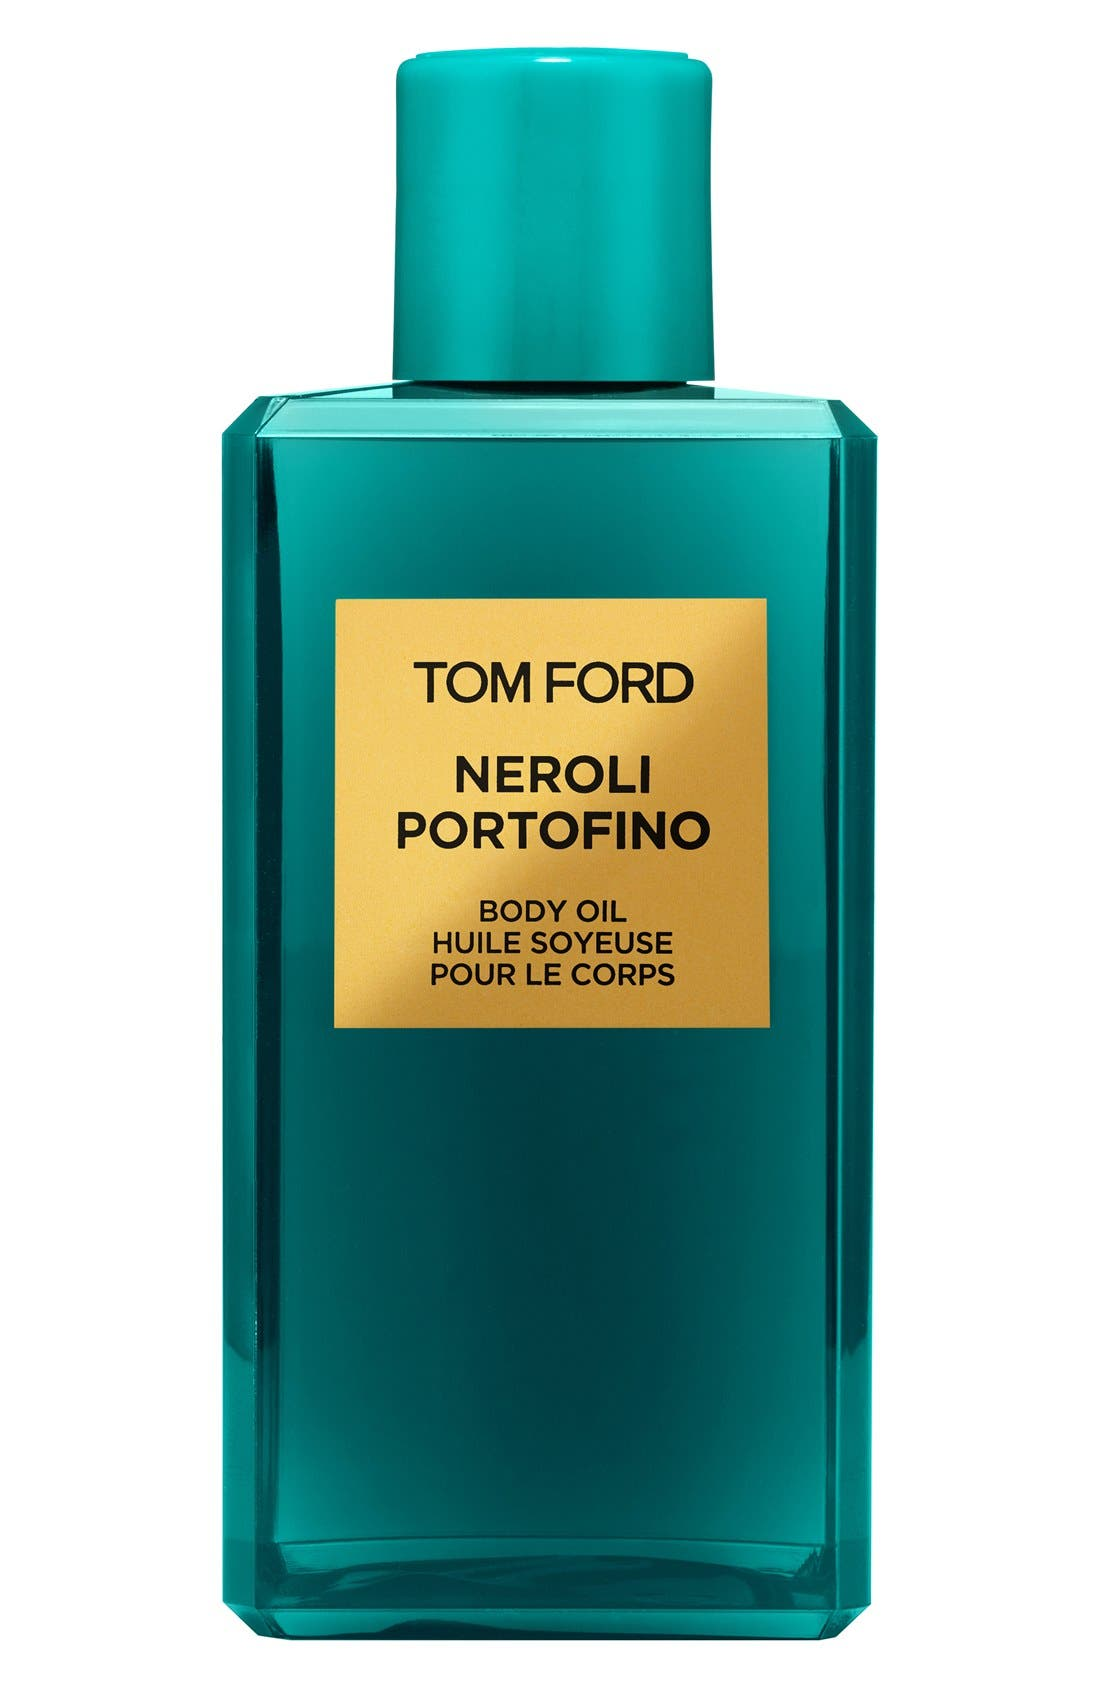 Tom Ford Private Blend 'Neroli Portofino' Body Oil